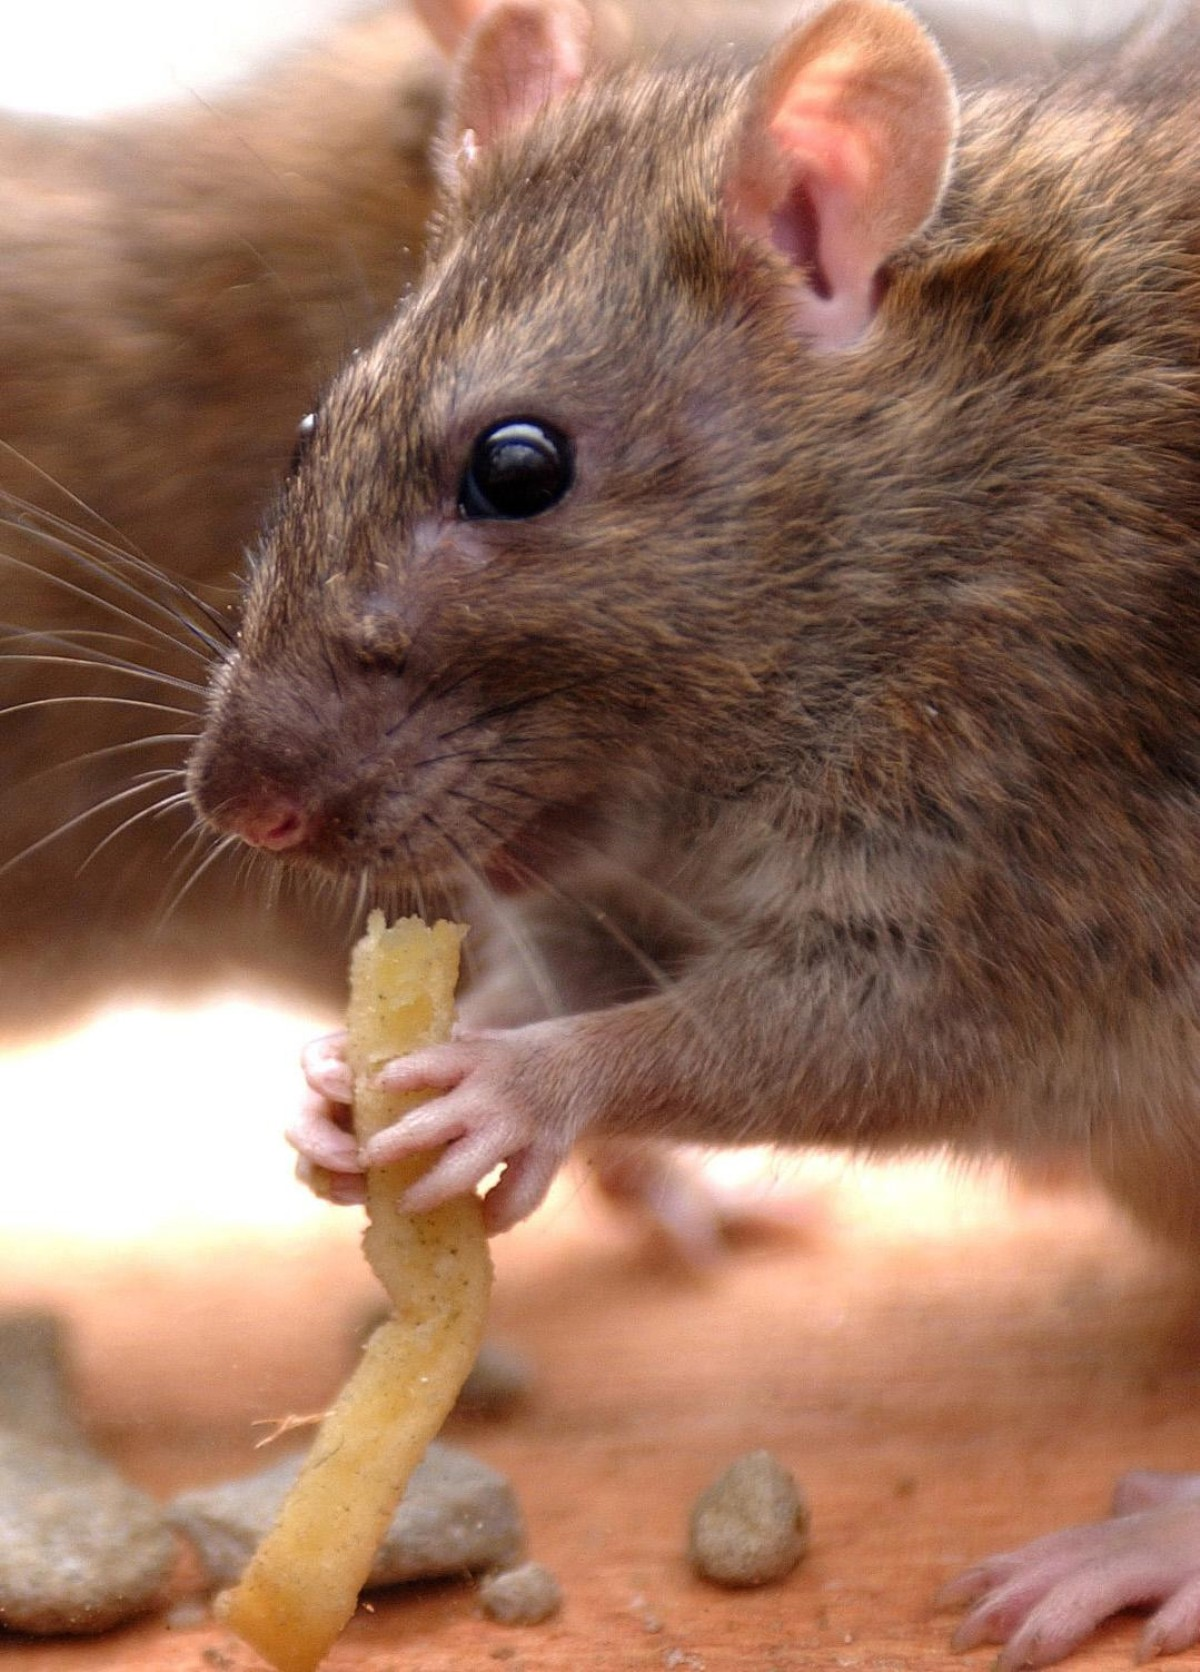 Recent flooding could lead to an influx of rats in Sussex